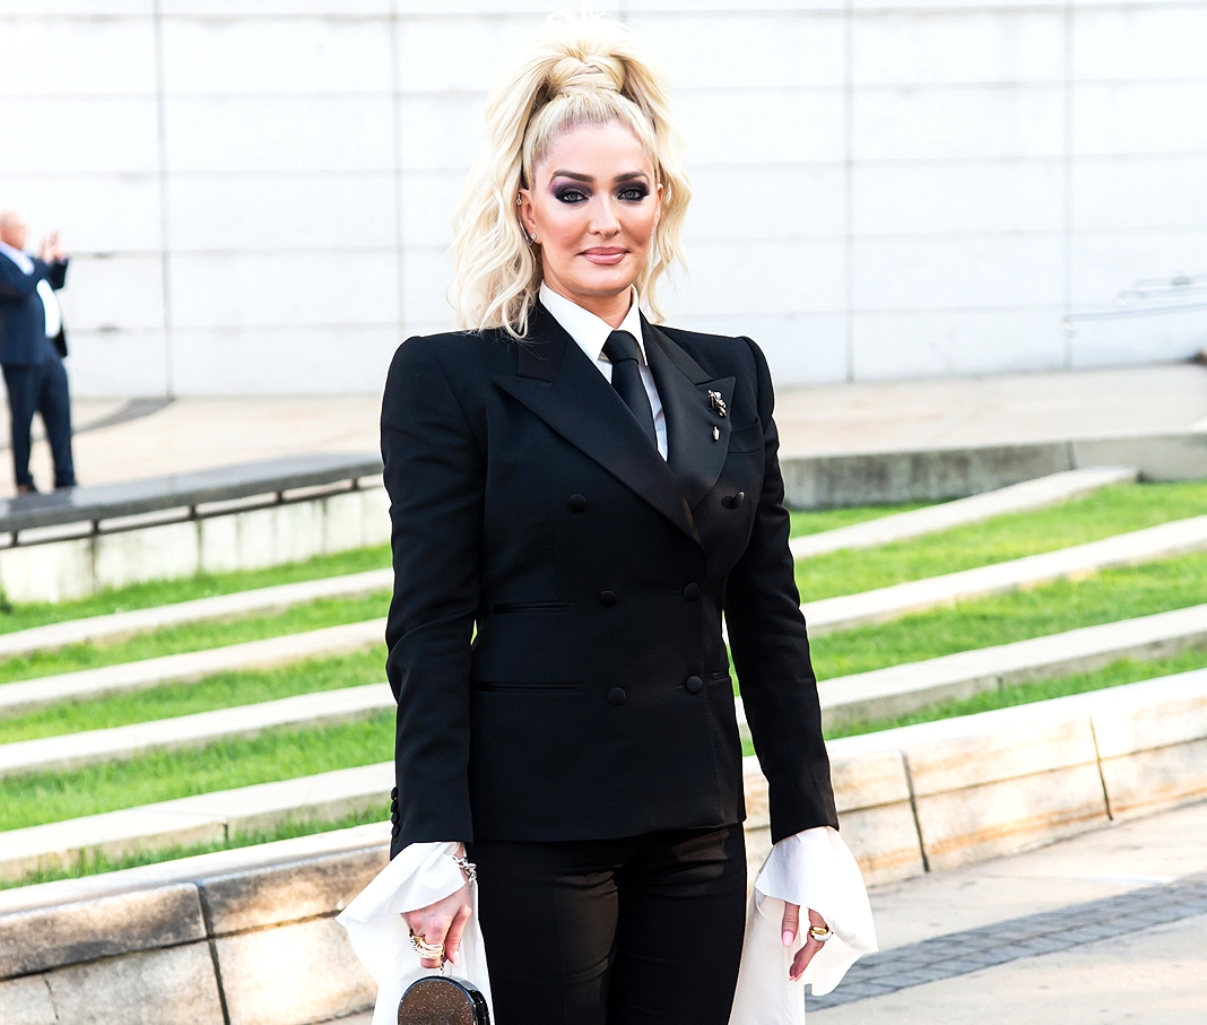 Erika Jayne is Accused of 'Staging' Photos at TJ Maxx as RHOBH Star's Settlement Deal to Pay Back Victims Expires